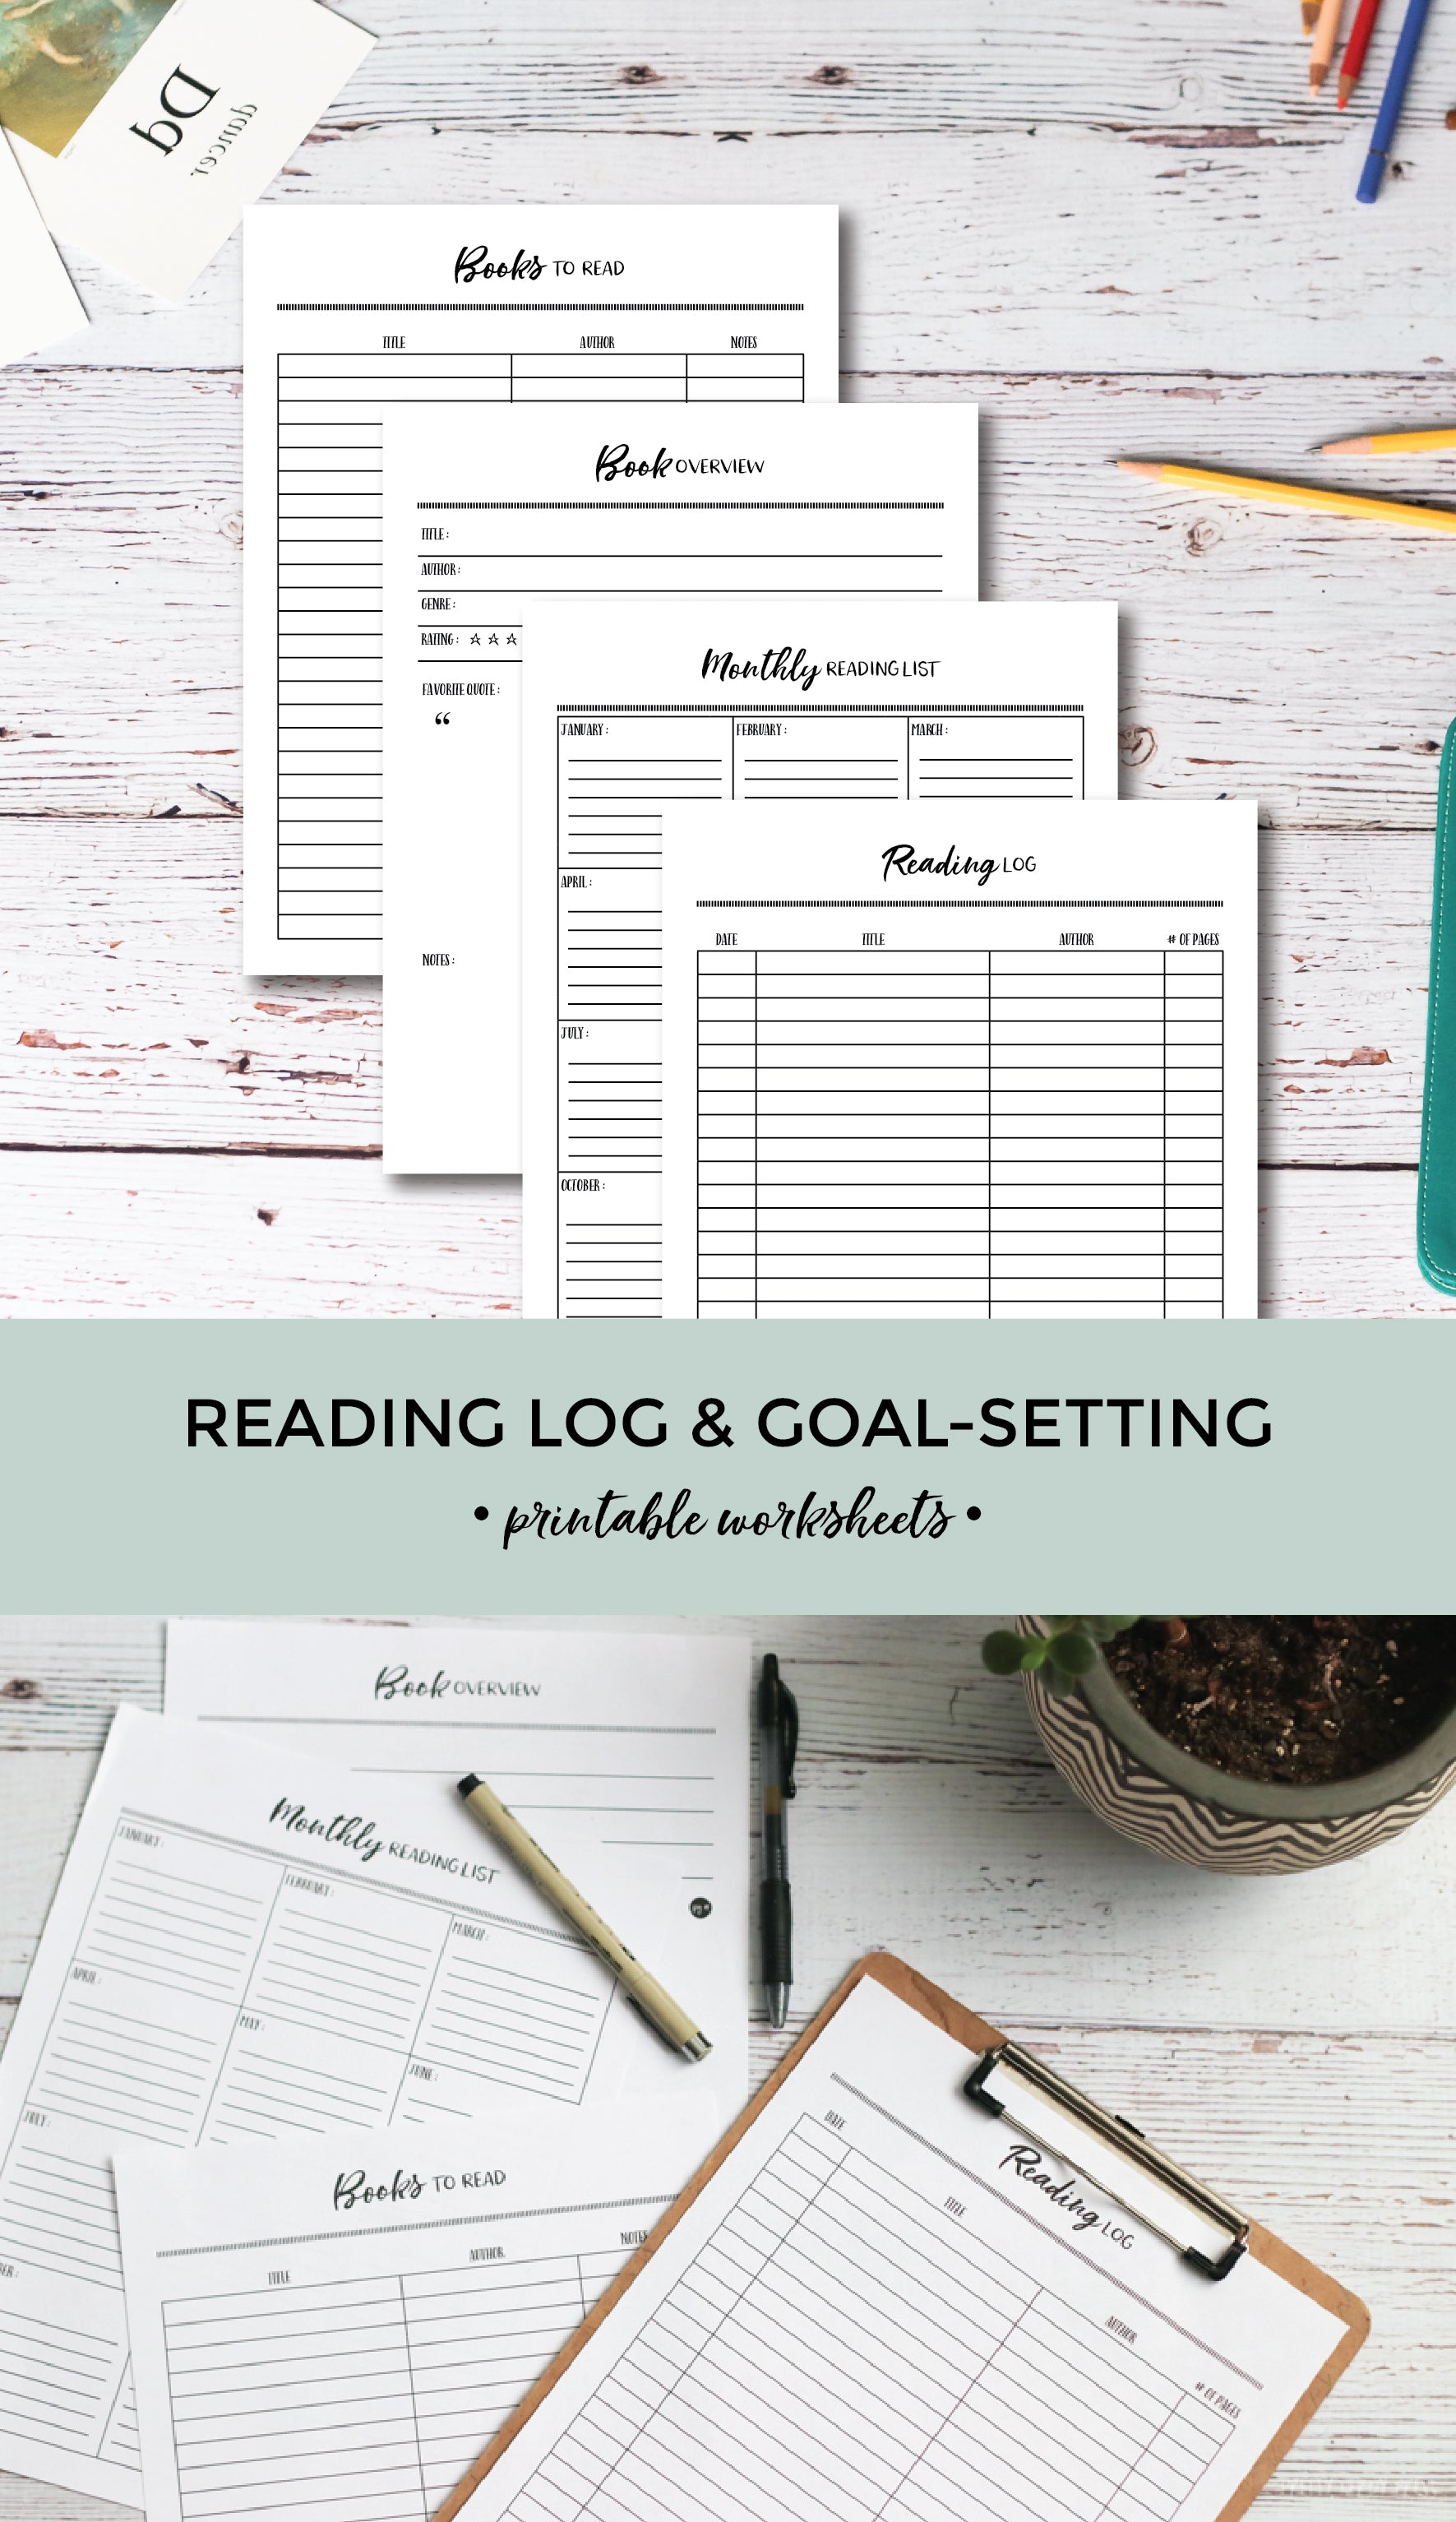 Reading Log & Goal-Setting Printable Worksheets | For Homeschool or Classrooms | Pretty Nerdy Press